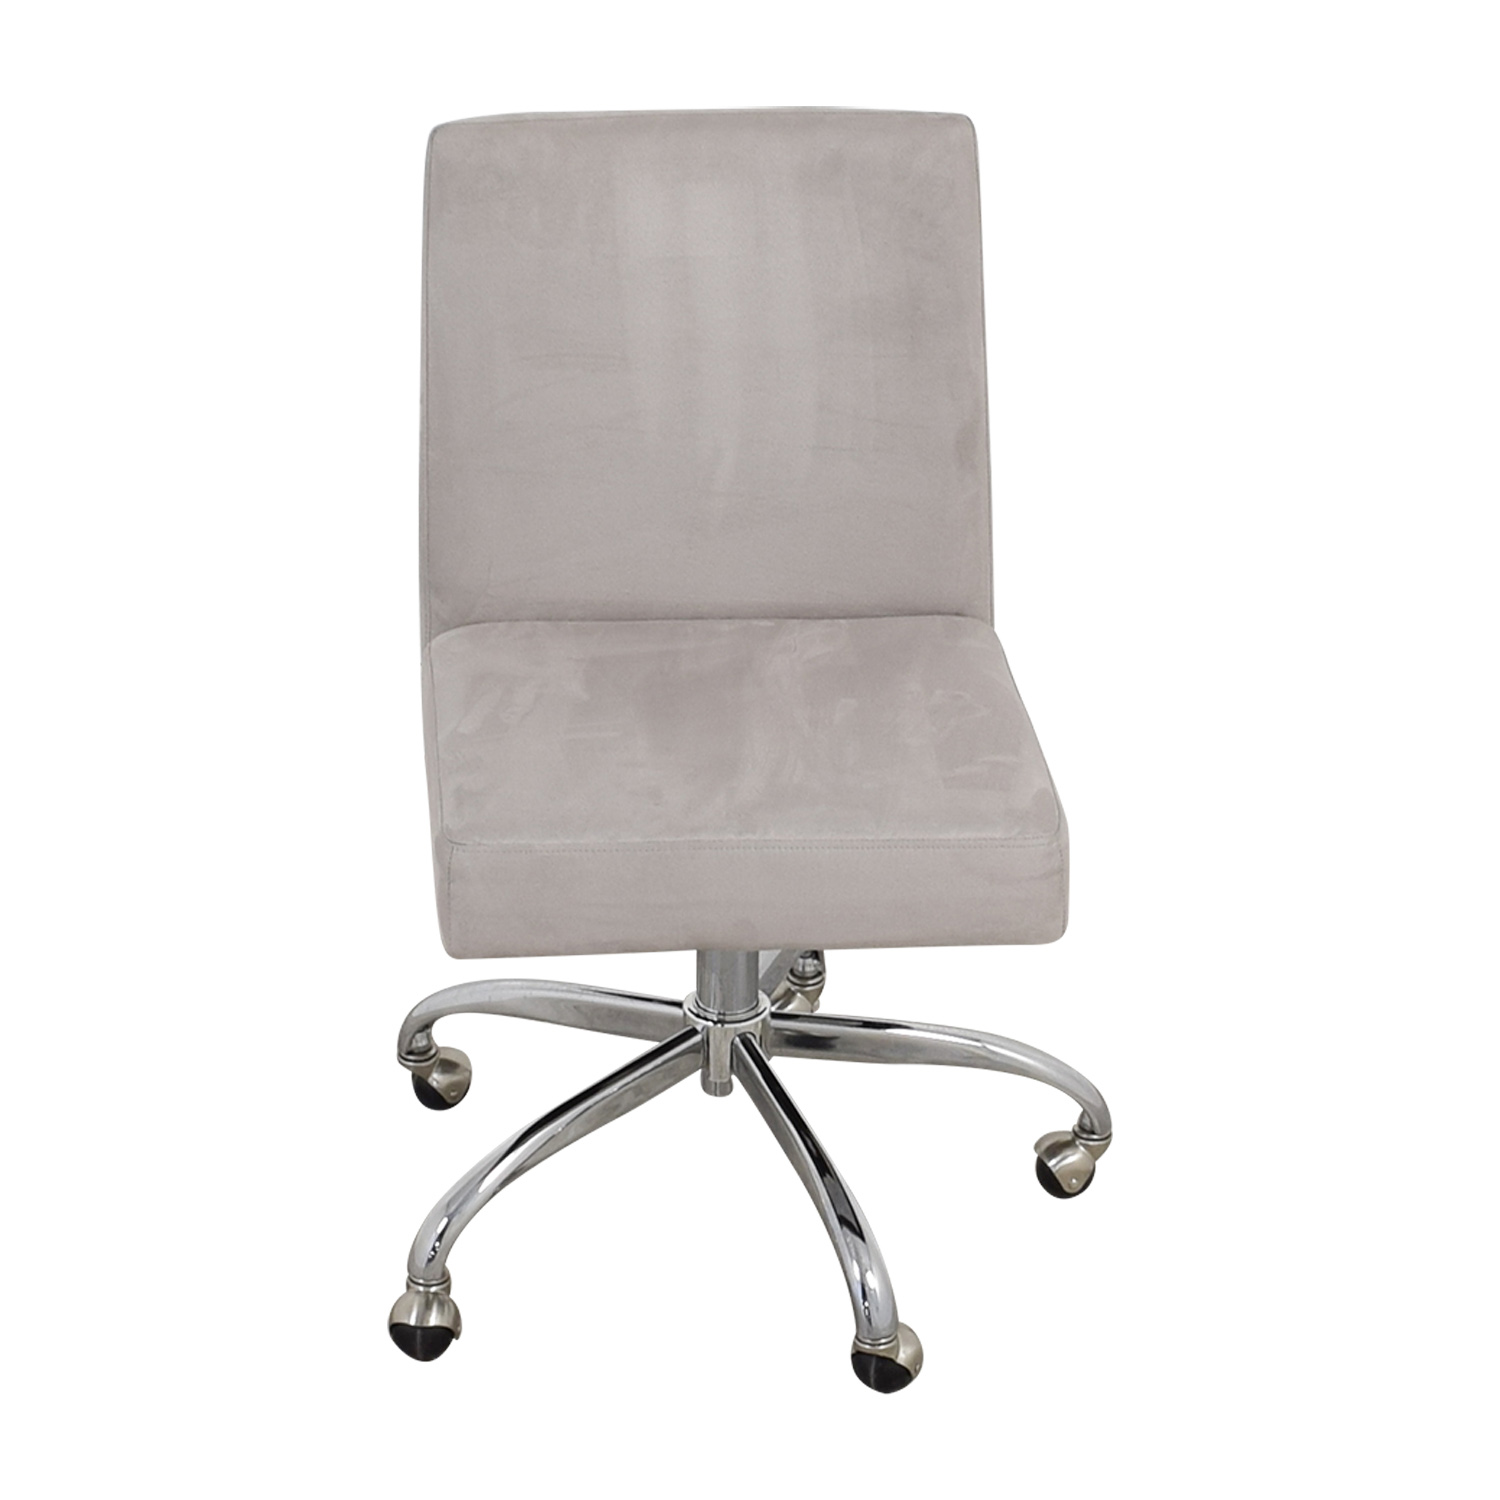 shop Pottery Barn Teen Pottery Barn Teen Grey Chair online